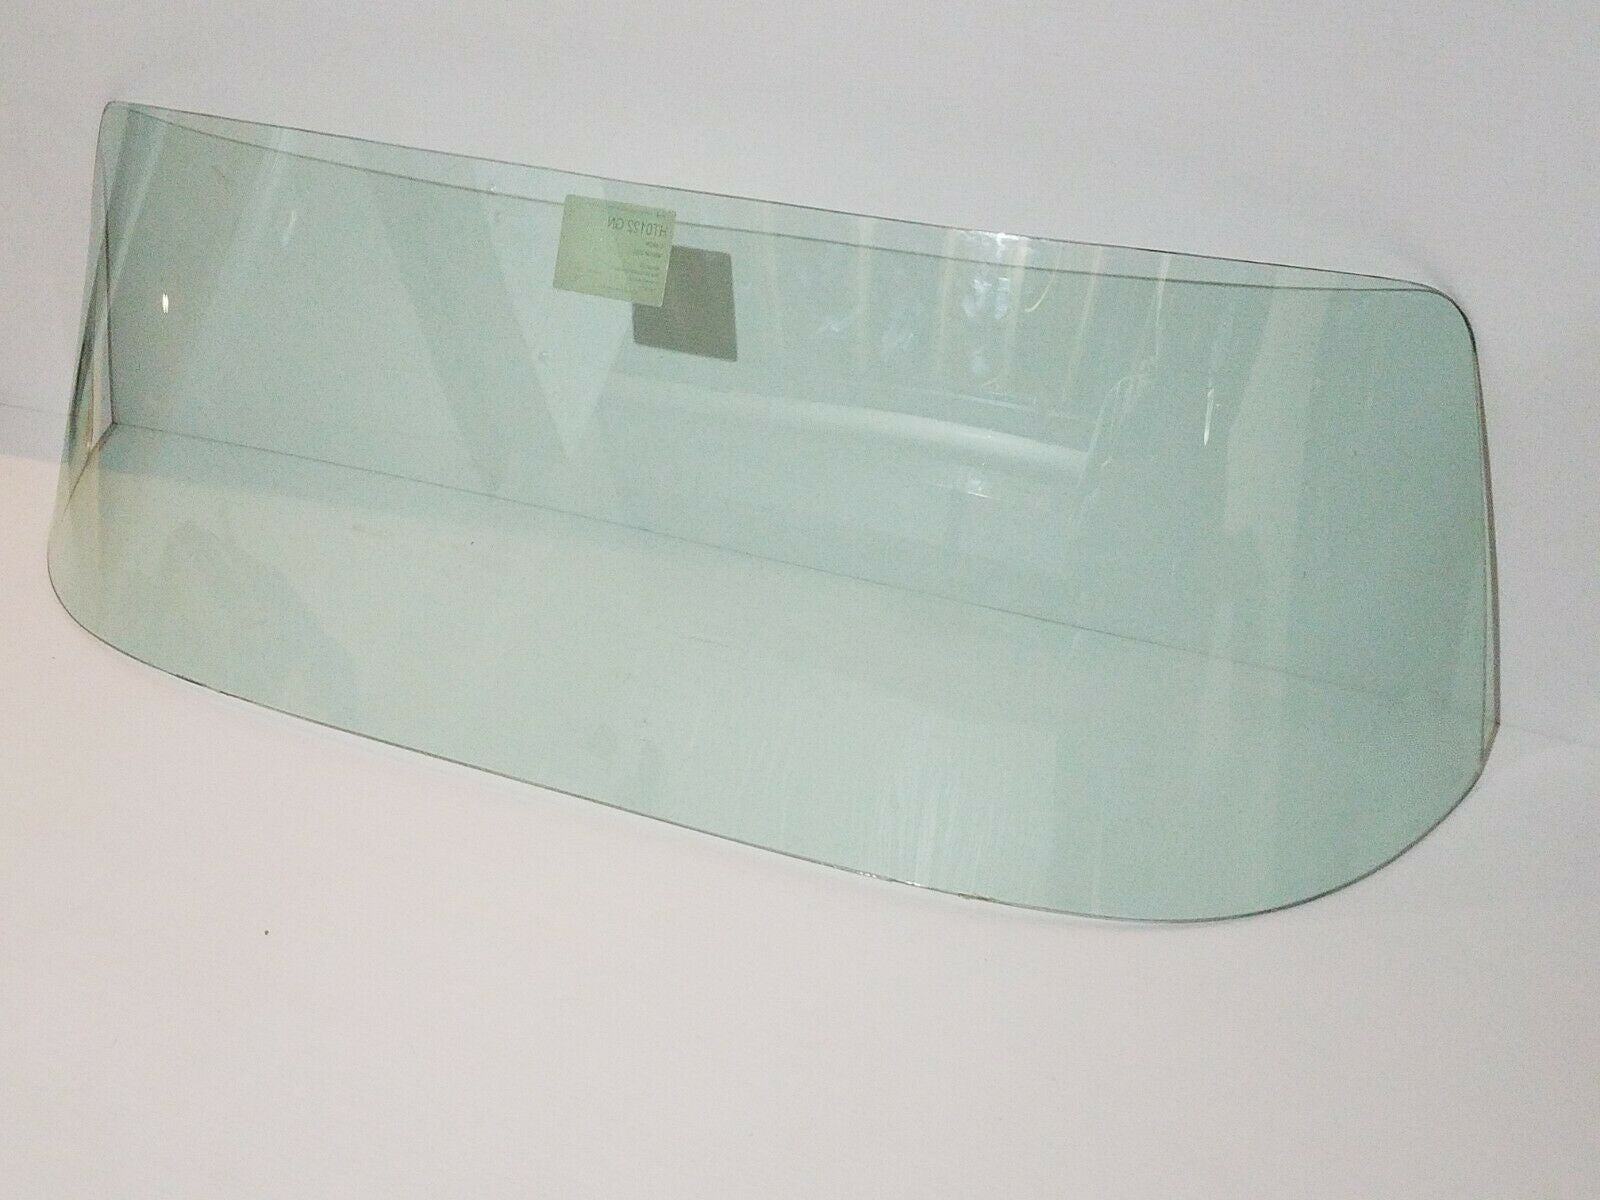 1953-1955 Ford Panel Delivery Truck / Van Windshield, OEM